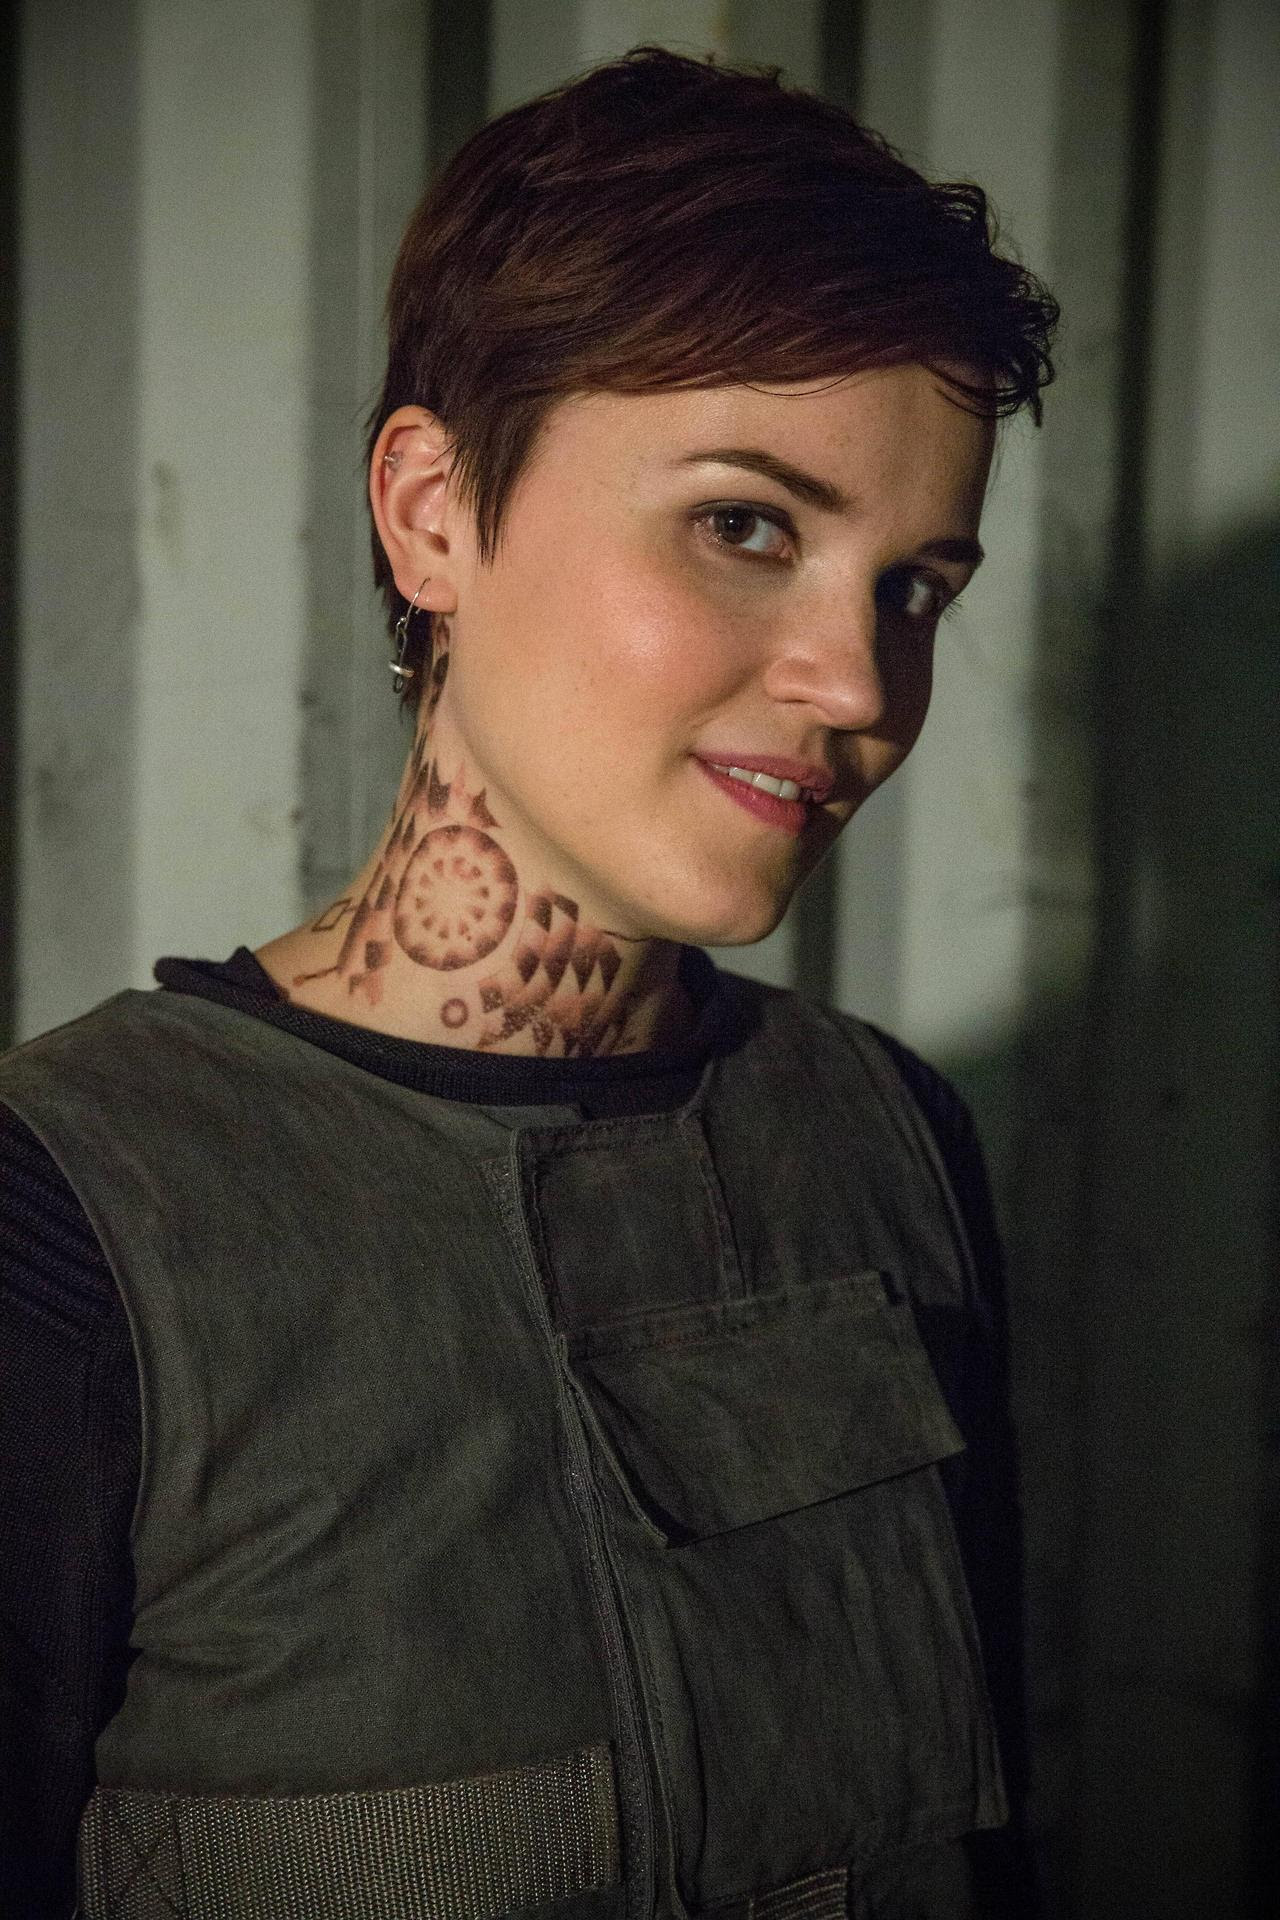 http://fandomnetnews.files.wordpress.com/2014/03/divergentstill12.jpg